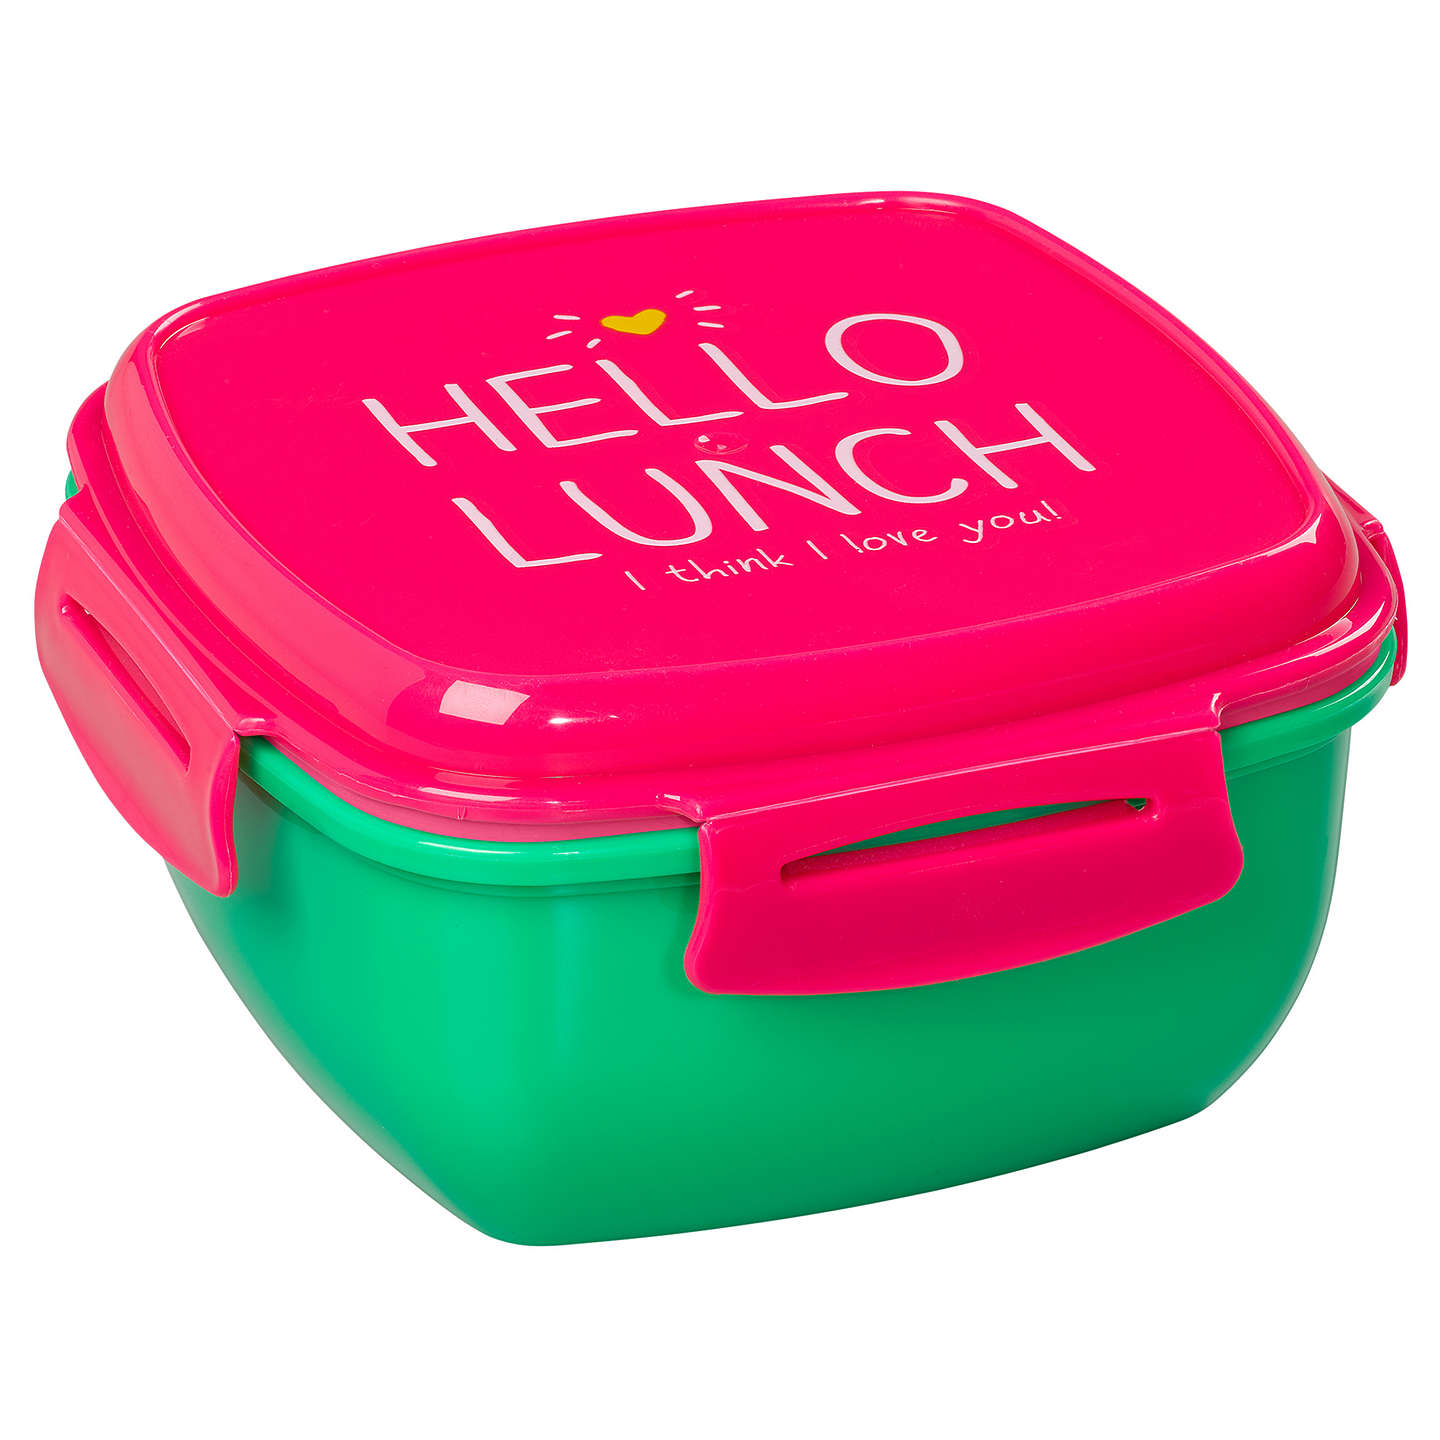 Many modern lunch boxes have compartments for ice packs so they don't bounce around in your child's lunch box as well. Warm foods can be a little trickier, but Thermos-style containers work well for older kids and foods like stews and chili.